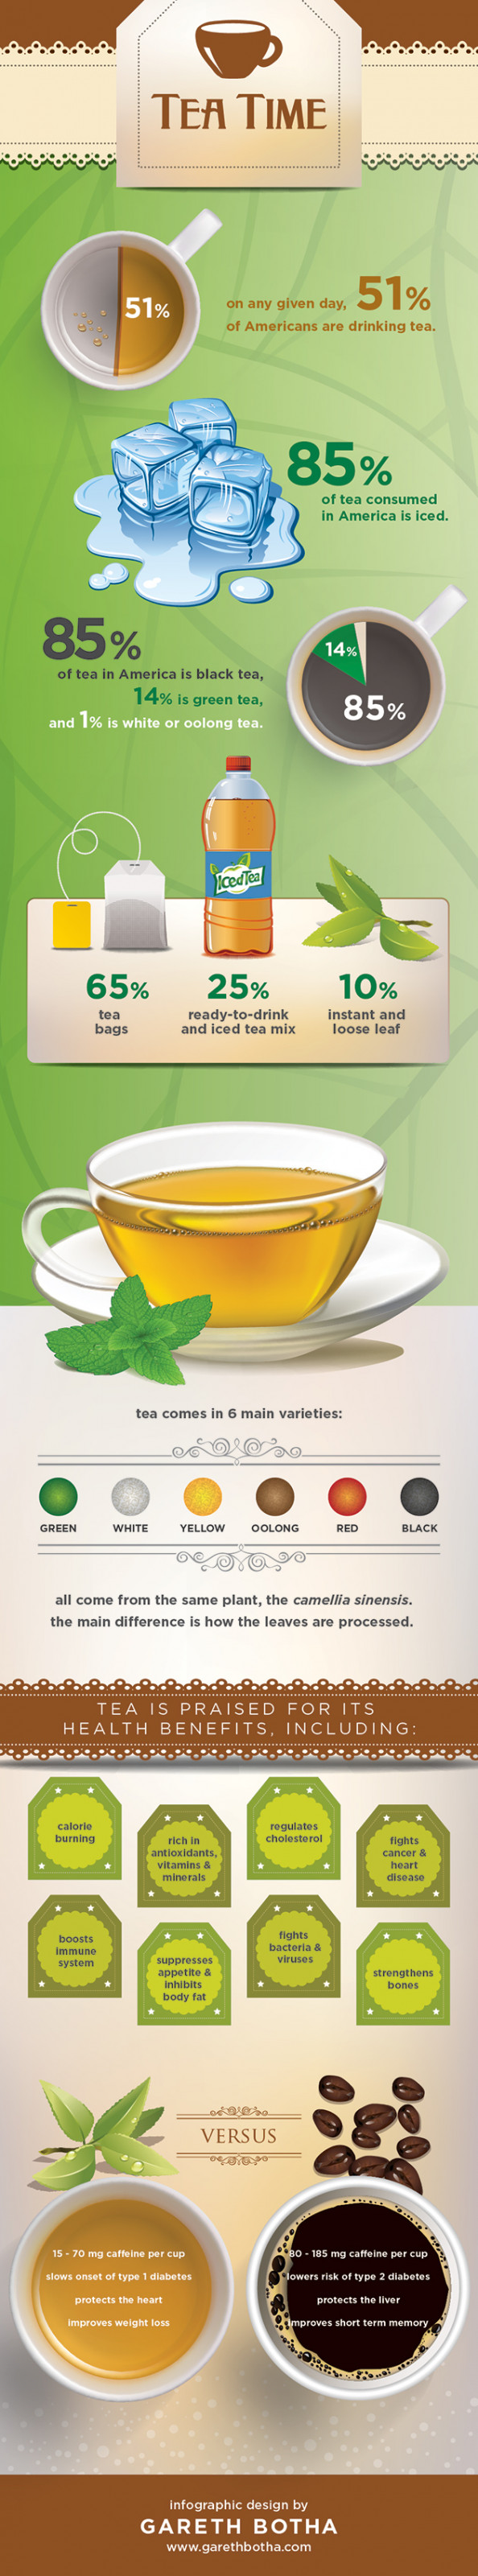 Tea Time Infographic